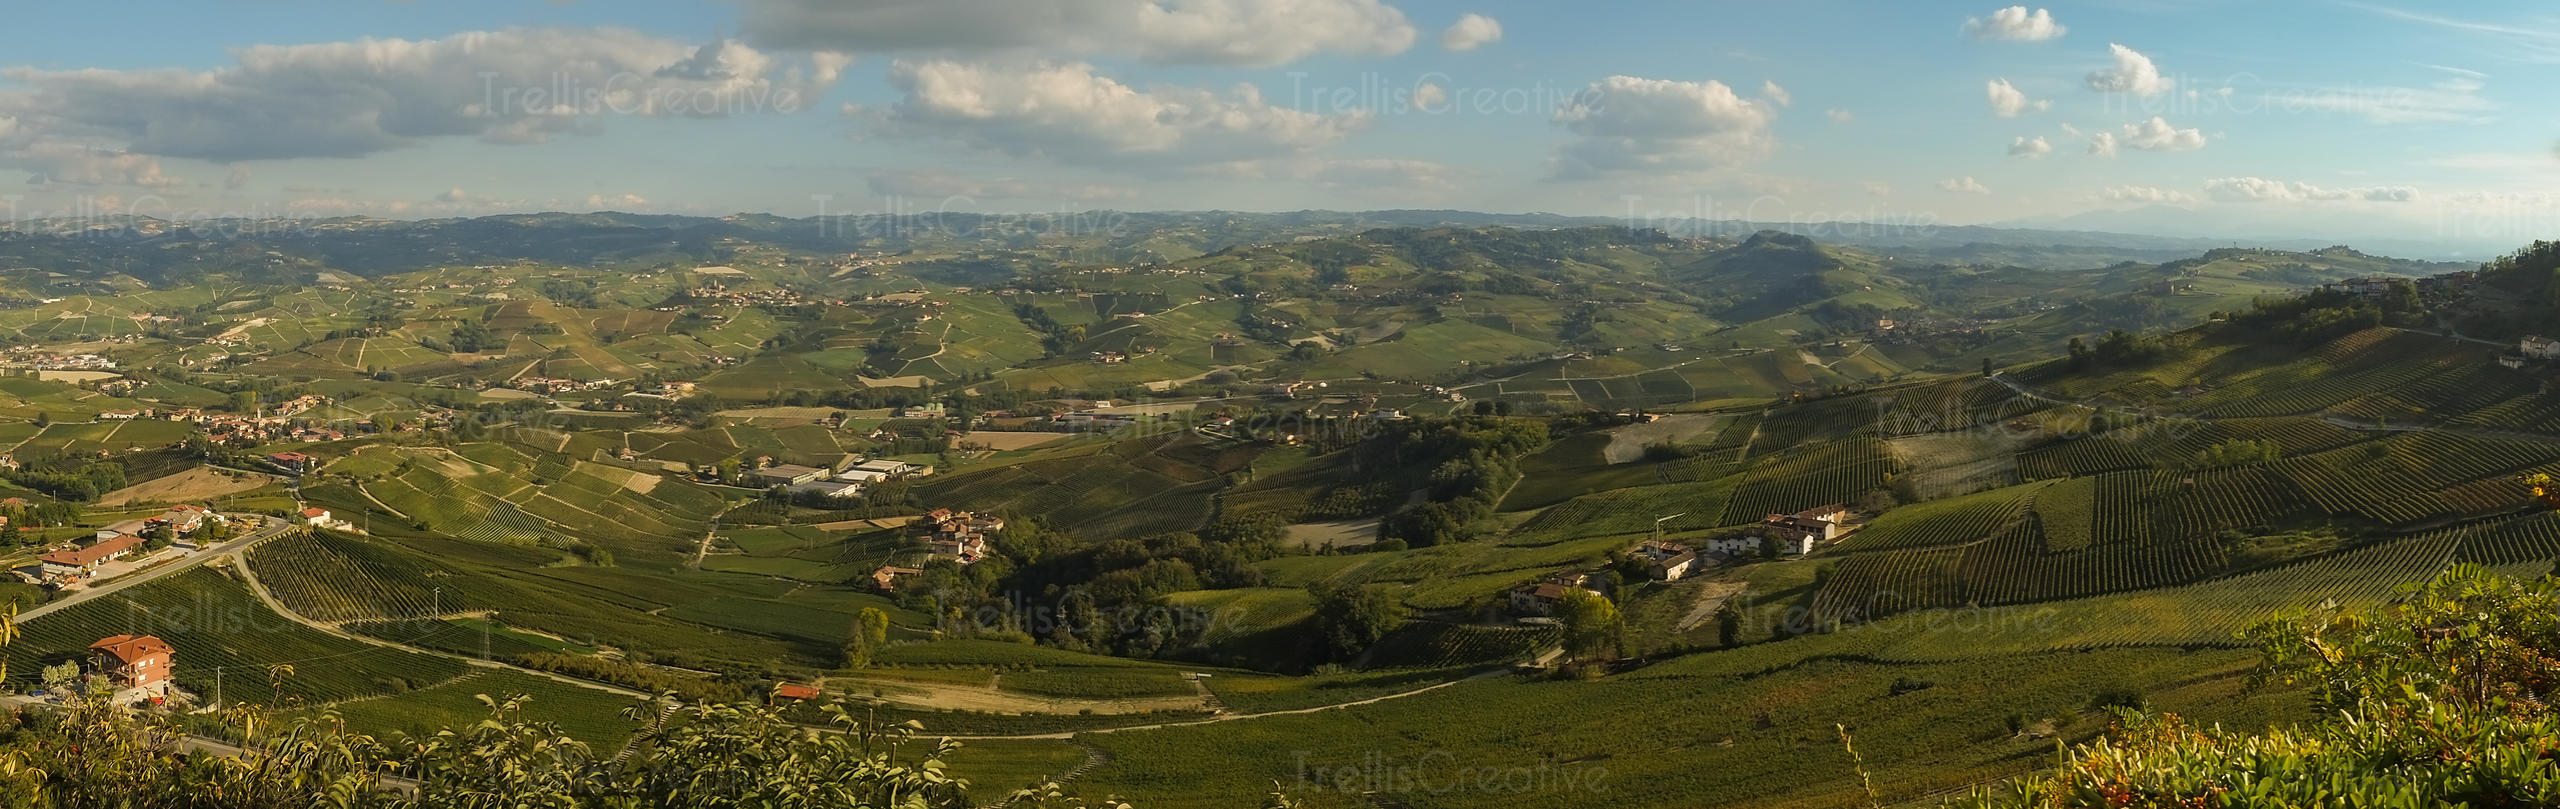 View of the Piedmont Region countryside from the town of La Morra, Italy